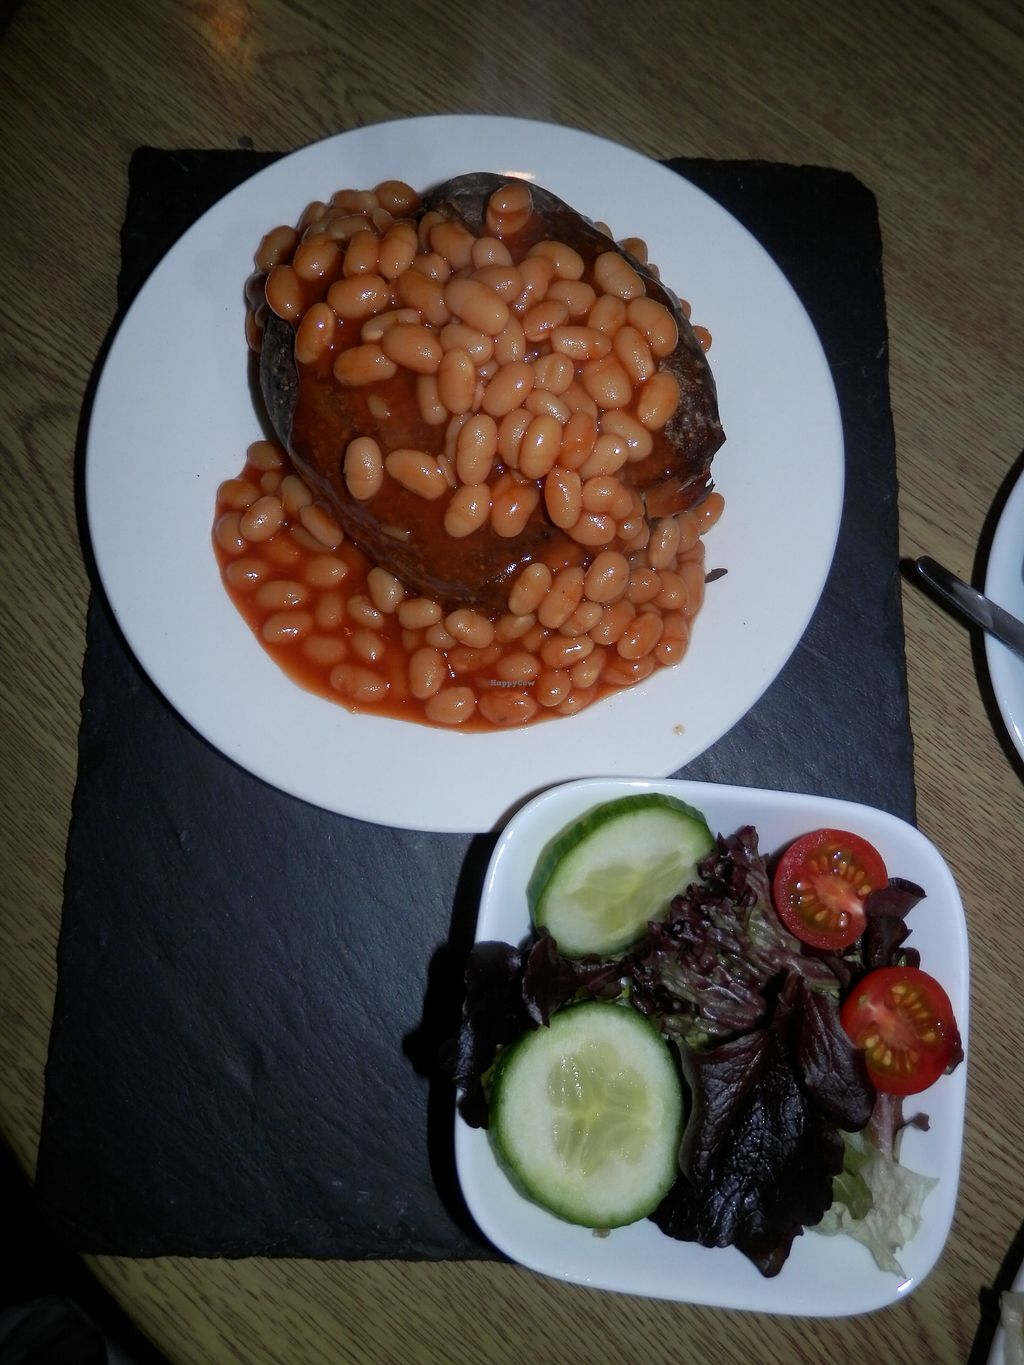 "Photo of Penelope's Cafe   by <a href=""/members/profile/Vegan_Belle"">Vegan_Belle</a> <br/>Jacket potato with baked beans and salad <br/> January 12, 2018  - <a href='/contact/abuse/image/109247/345718'>Report</a>"